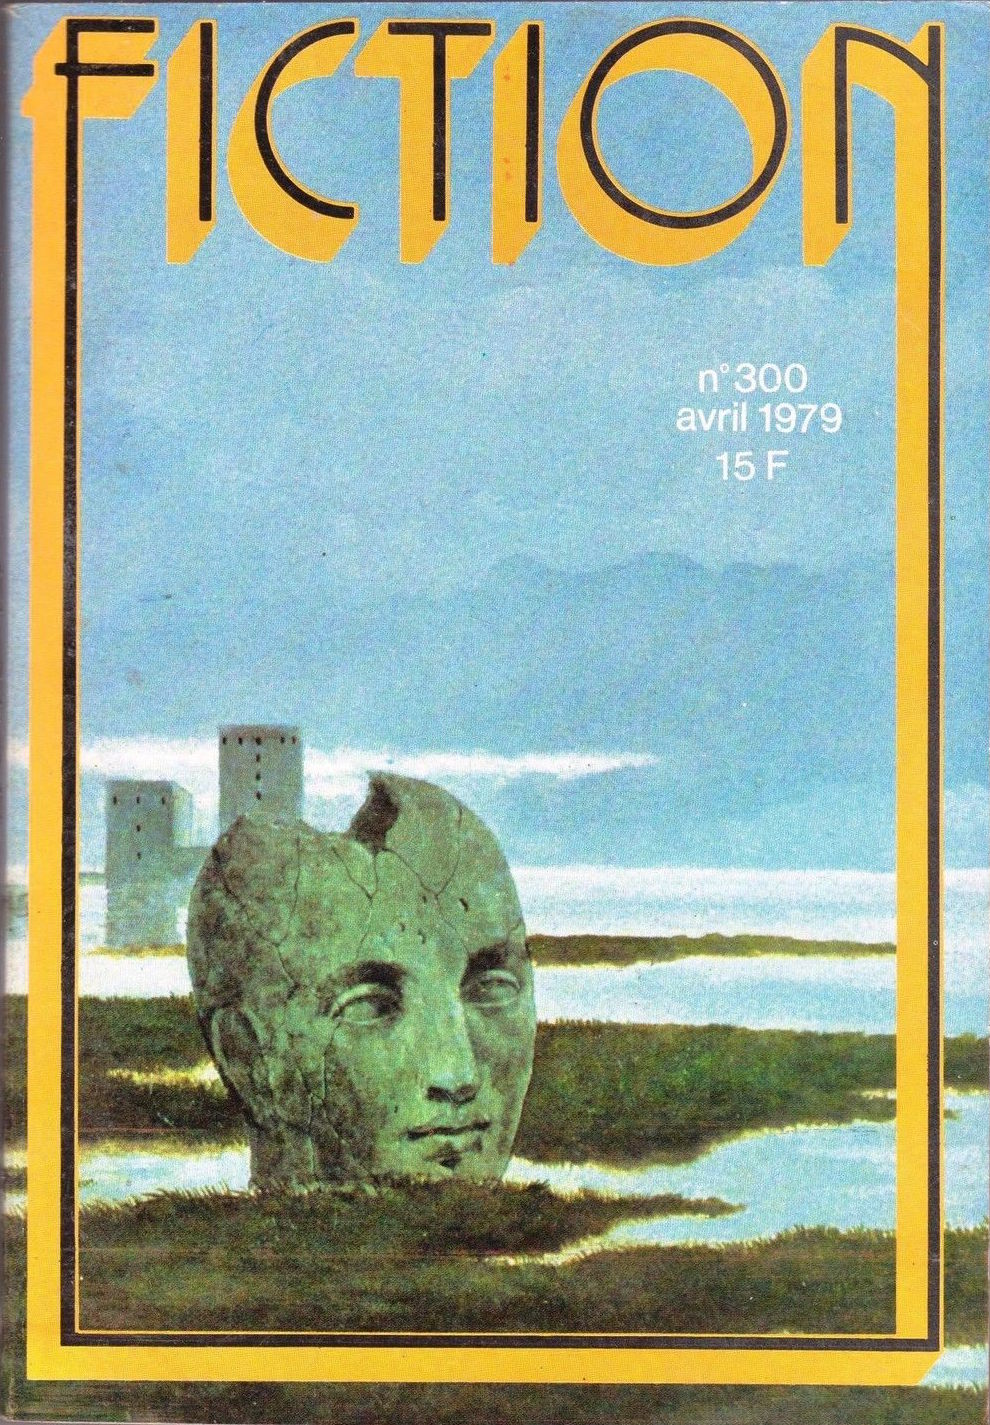 """Cover of April 1979 edition of """"Fiction"""" magazine, the image shows the word """"Fiction"""" in yellow and black text framing an illustration of a giant stone head in a landscape with a castle in the background."""